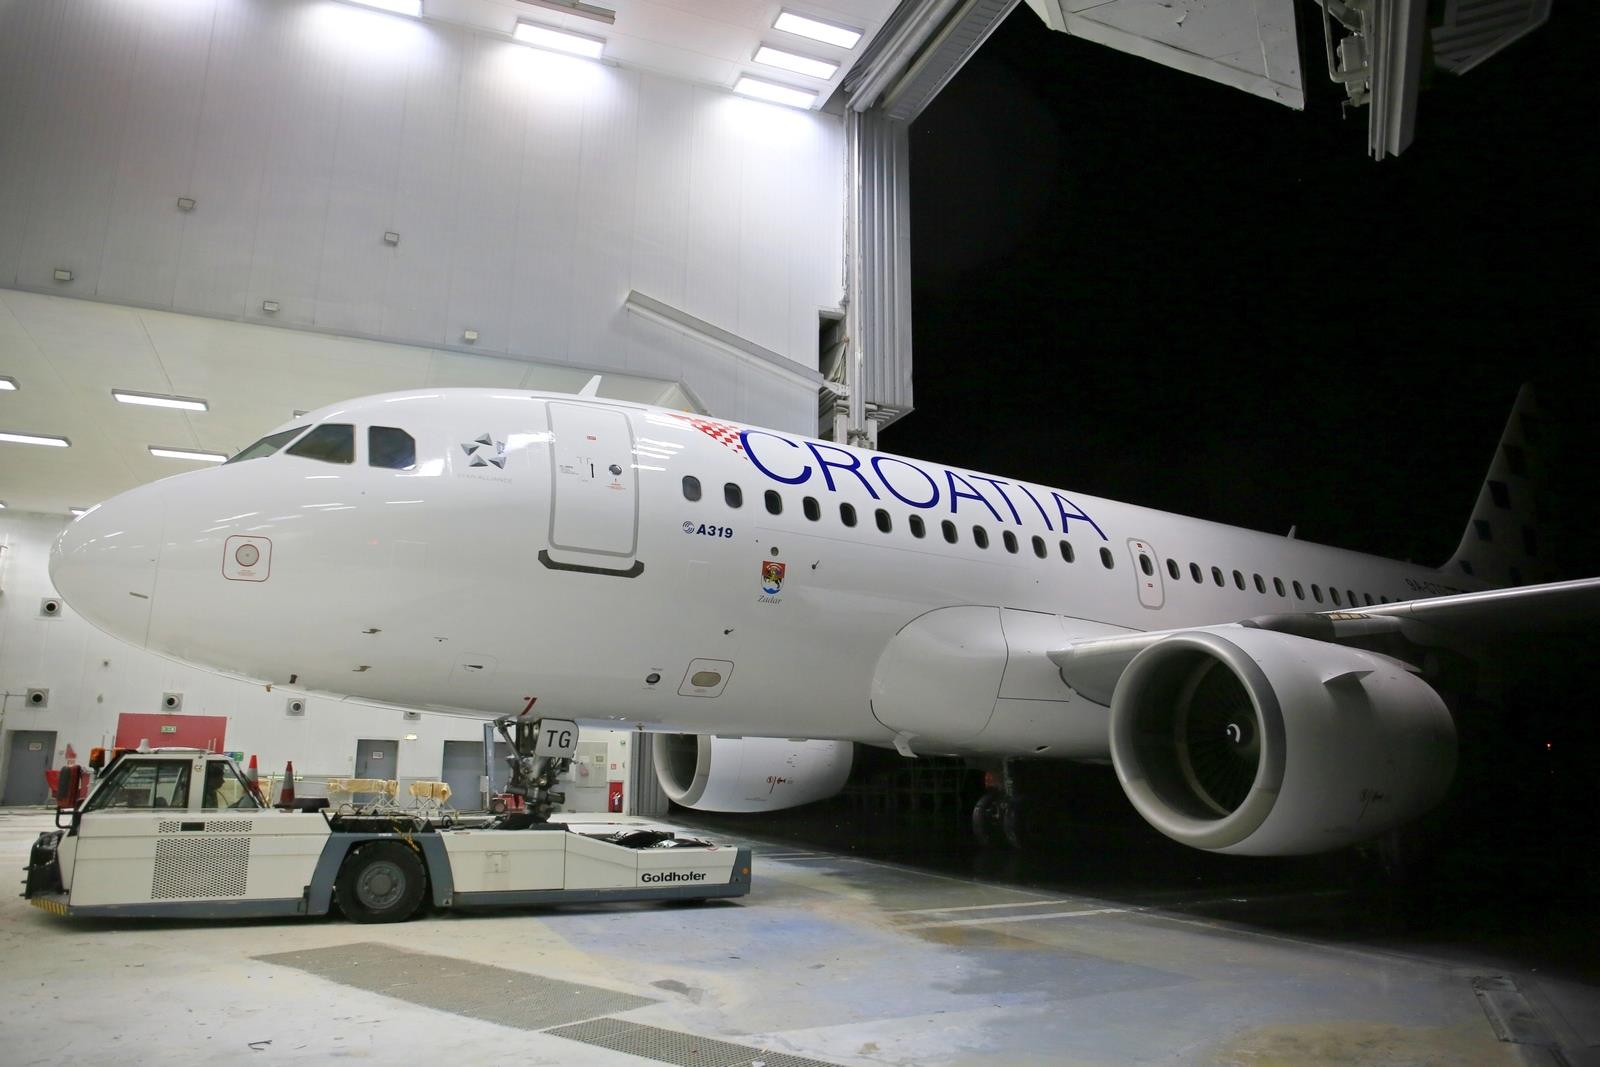 PHOTOS: Croatia Airlines rolls out new livery